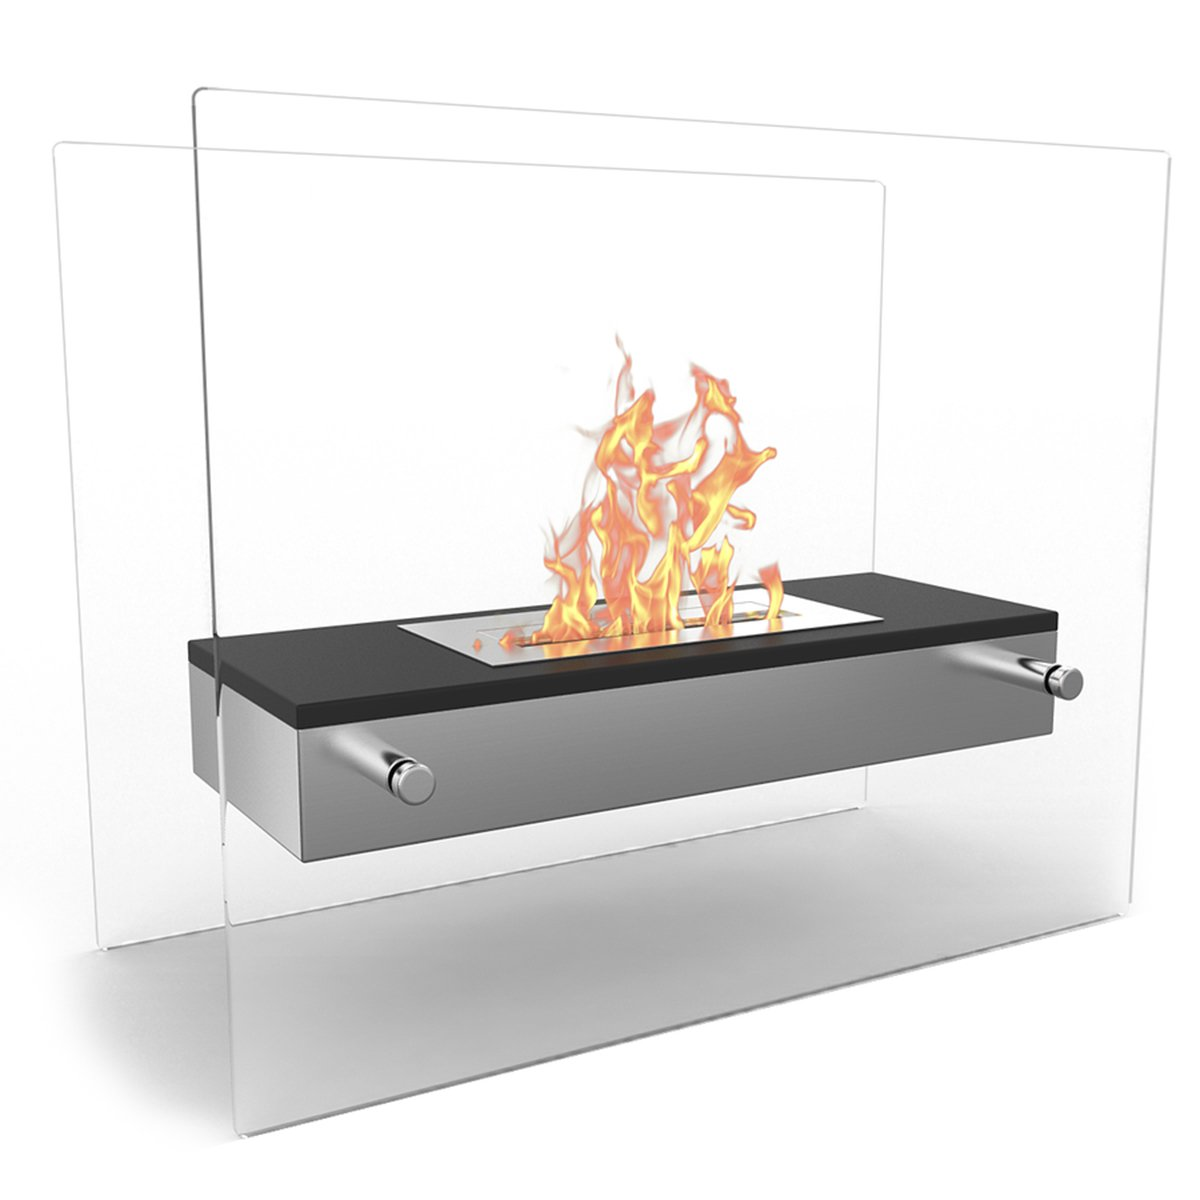 Regal Flame Vista Fire Pit Tabletop Portable Bio Ethanol Fireplace in Black by Regal Flame